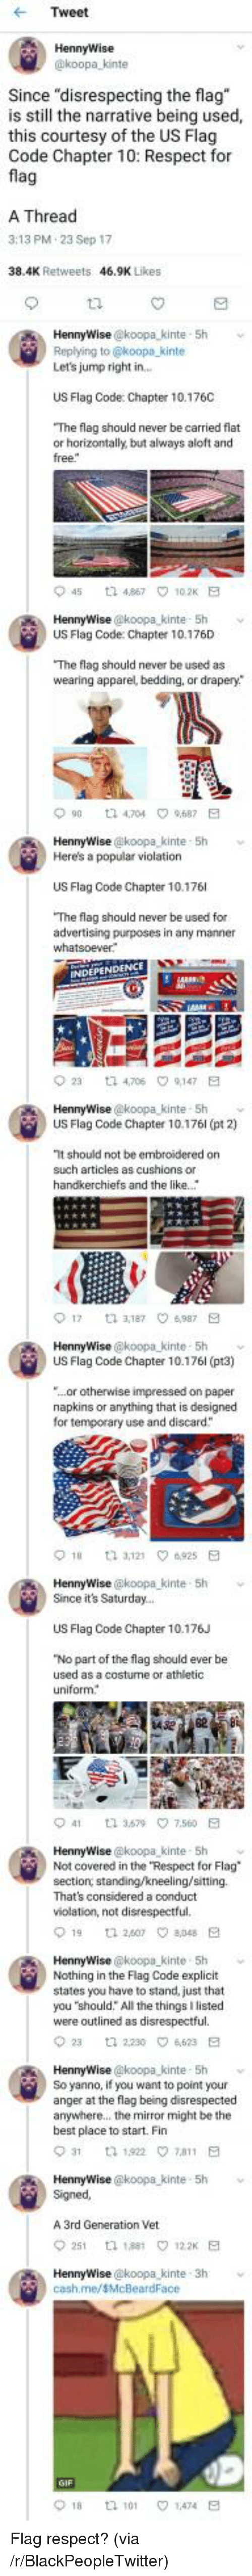 """bedding: Tweet  HennyWise  koopa kinte  Since """"disrespecting the flag  is still the narrative being used,  this courtesy of the US Flag  Code Chapter 10: Respect for  fla  A Thread  3:13 PM.23 Sep 17  38.4K Retweets  46.9K Likes  HennyWise @koopa_kinte 5h  Replying to @koopa kinte  Let's jump right in  US Flag Code: Chapter 10.176C  The flag should never be carried flat  or horizontally, but always aloft and  free  45 t2 467 102K E  US Flag Code: Chapter 10.176D  The flag should never be used as  wearing apparel, bedding, or drapery*  90 t 4704 9687 E  HennyWise @koopa kinte 5h  Here's a popular violation  US Flag Code Chapter 10.176  The flag should never be used for  advertising purposes in any manner  23  ta 4,706  9,147  HennyWise @koopa kinte- Sh  US Flag Code Chapter 10.176l (pt 2)  It should not be embroidered on  such articles as cushions or  handkerchiefs and the like.  017  3,187 ㅇ6,987  HennyWise @koopa kinte- 5h  US Flag Code Chapter 10.176l (pt3)  ...or otherwise impressed on paper  napkins or anything that is designed  for temporary use and discard  HennyWise @koopa-kinte , 5h  Since it's Saturday..  ﹀  US Flag Code Chapter 10.176J  No part of the flag should ever be  used as a costurne or athletic  uniform  41  3.579\7.560  HennyWise @koopa kinte 5h  Not covered in the Respect for Flag  section, standing/kneeling/sitting.  That's considered a conduct  violation, not disrespectful.  19 1 260708E  HennyWise @koopa kinte 5h  Nothing in the Flag Code explicit  states you have to stand, just that  you """"should: All the things I listed  were outlined as disrespectful.  2  2230 4623 E  HennyWise @koopa kinte 5h v  So yanno, if you want to point your  anger at the flag being disrespected  anywhere.. the mirror might be the  best place to start. Fin  HennyWise @koopa kinte 5h  Signed  A 3rd Generation Vet  251 th 188 122 E  cash.me/sMcBeardFace  018  tl 101  1.474 <p>Flag respect? (via /r/BlackPeopleTwitter)</p>"""